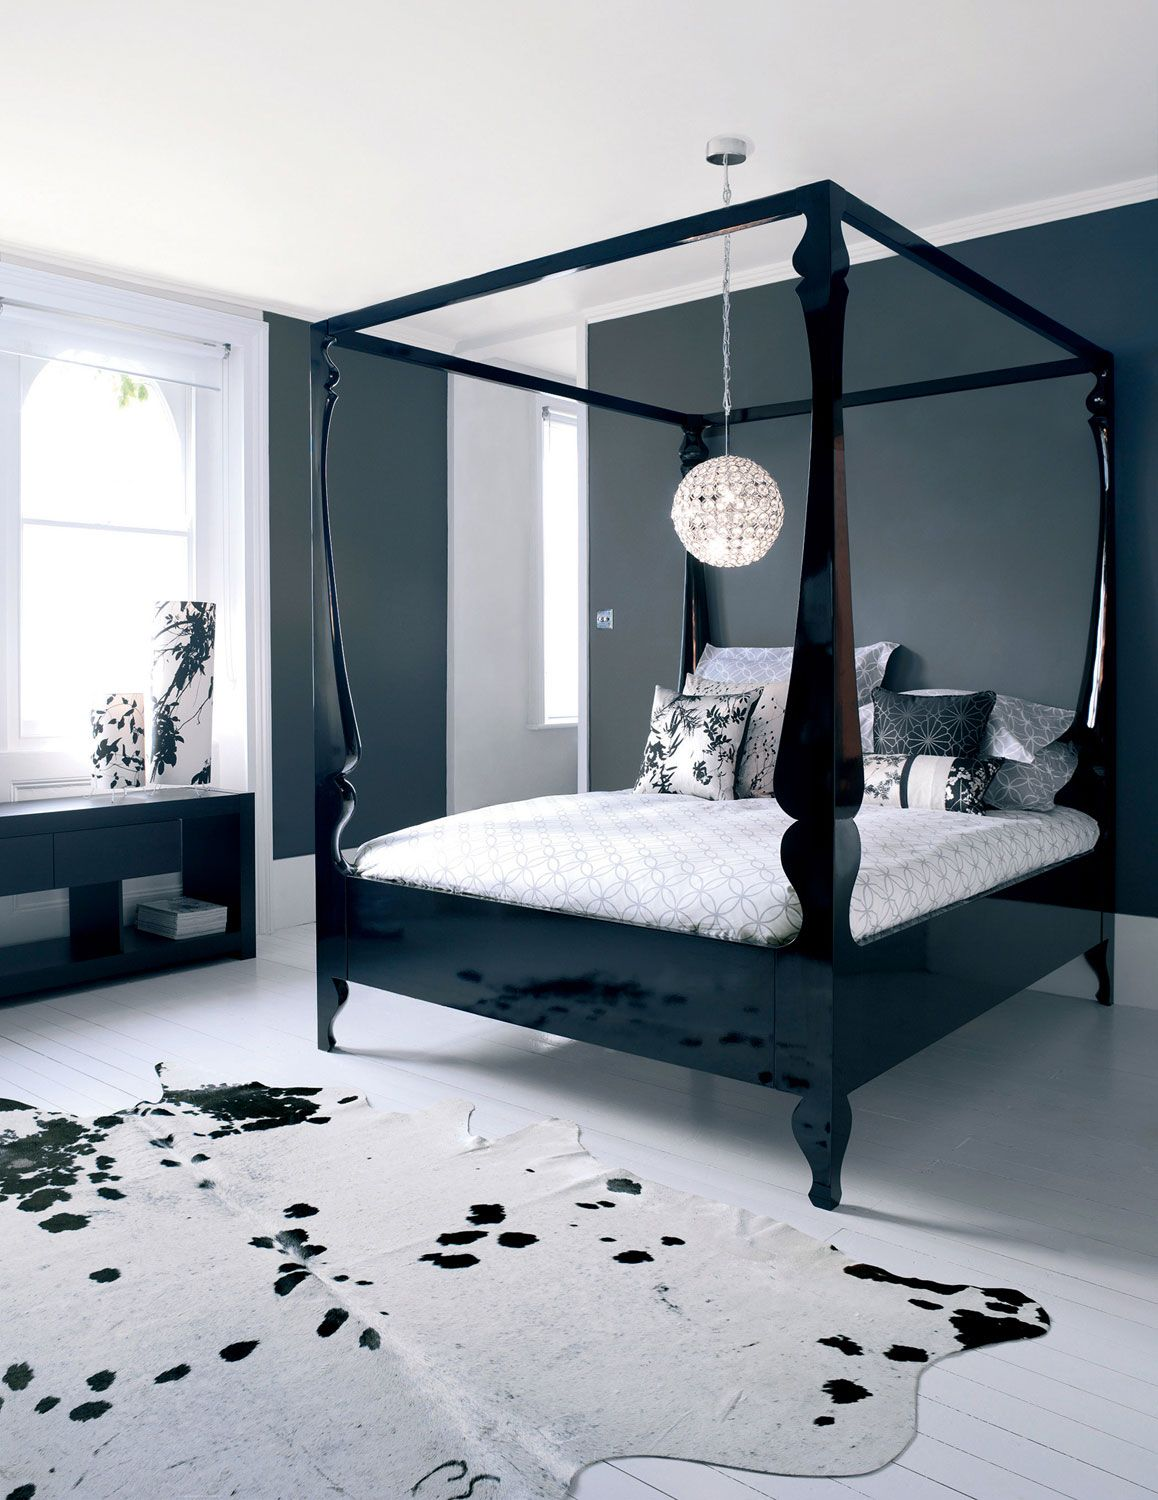 Heal S Louis Four Poster Super King Bed By John Reeves Four